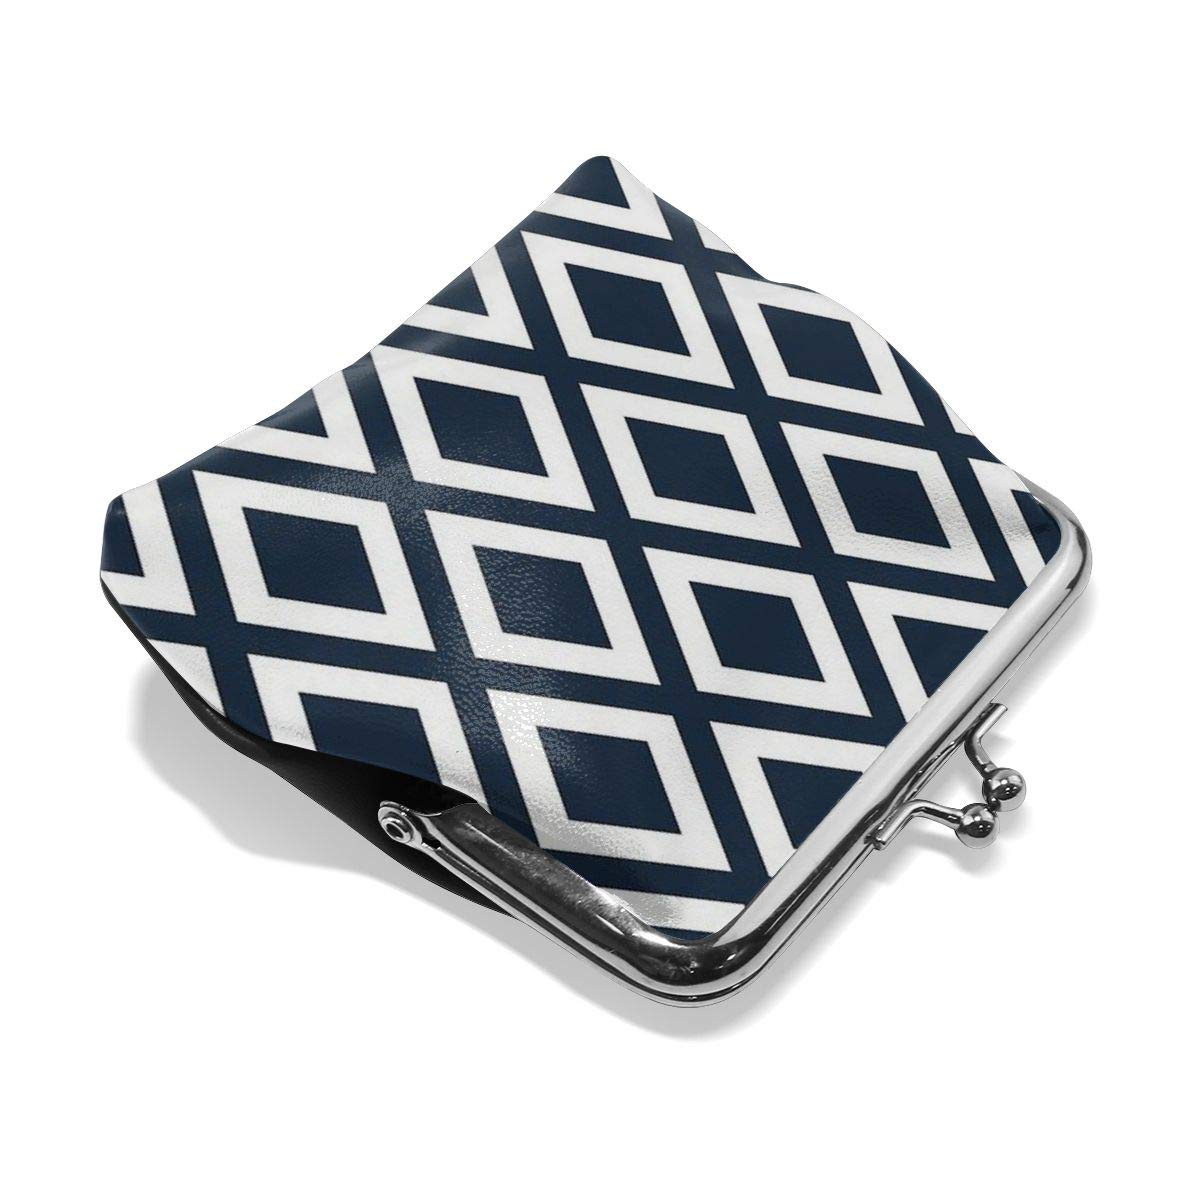 Poream Navy Diamond Pattern Personalized Retro Leather Cute Classic Floral Coin Purse Clutch Pouch Wallet For Girls And Womens